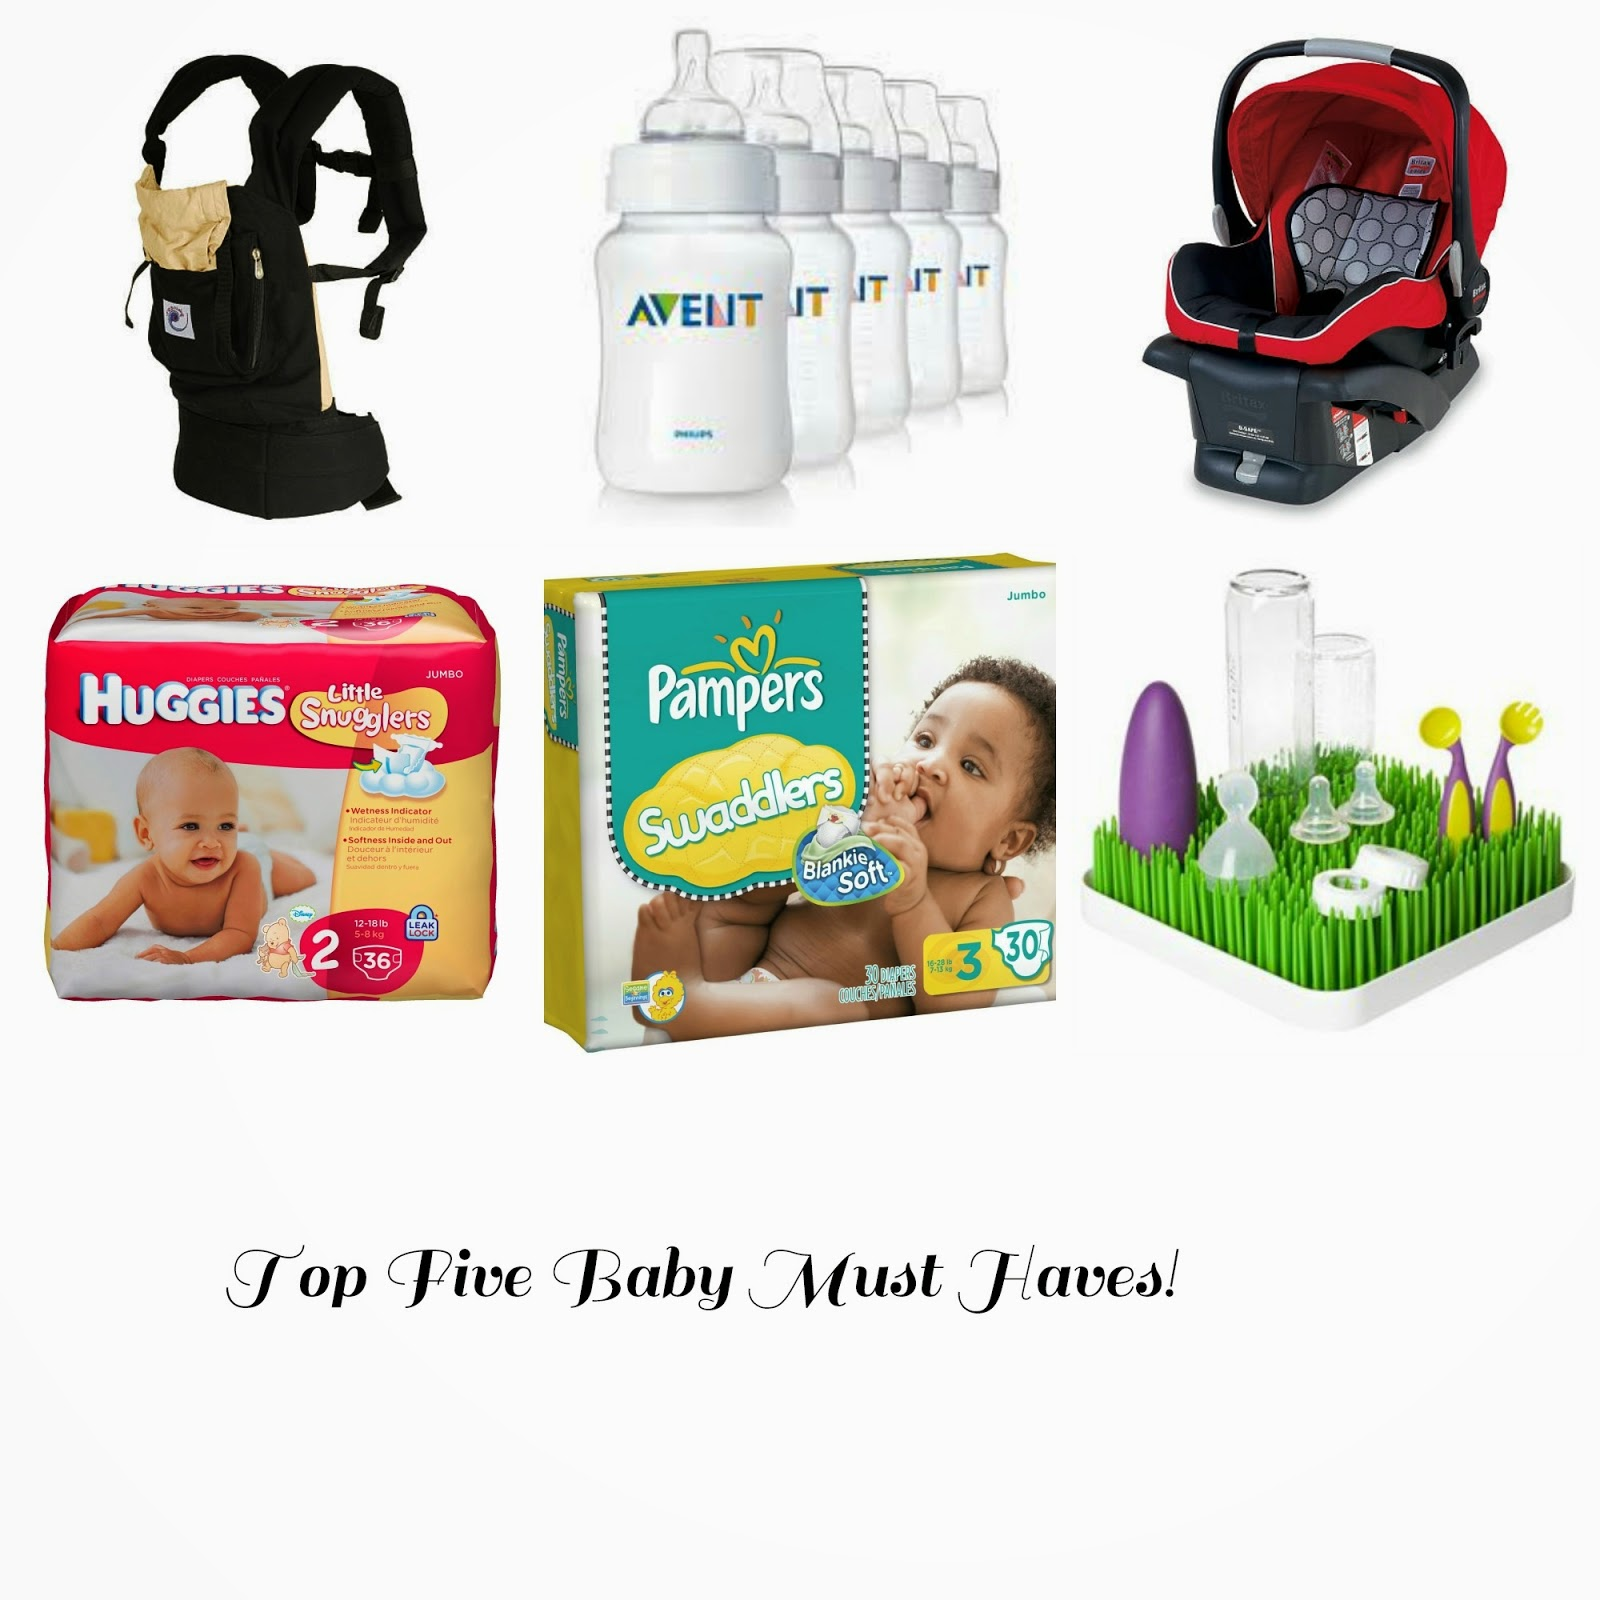 top five baby must haves!